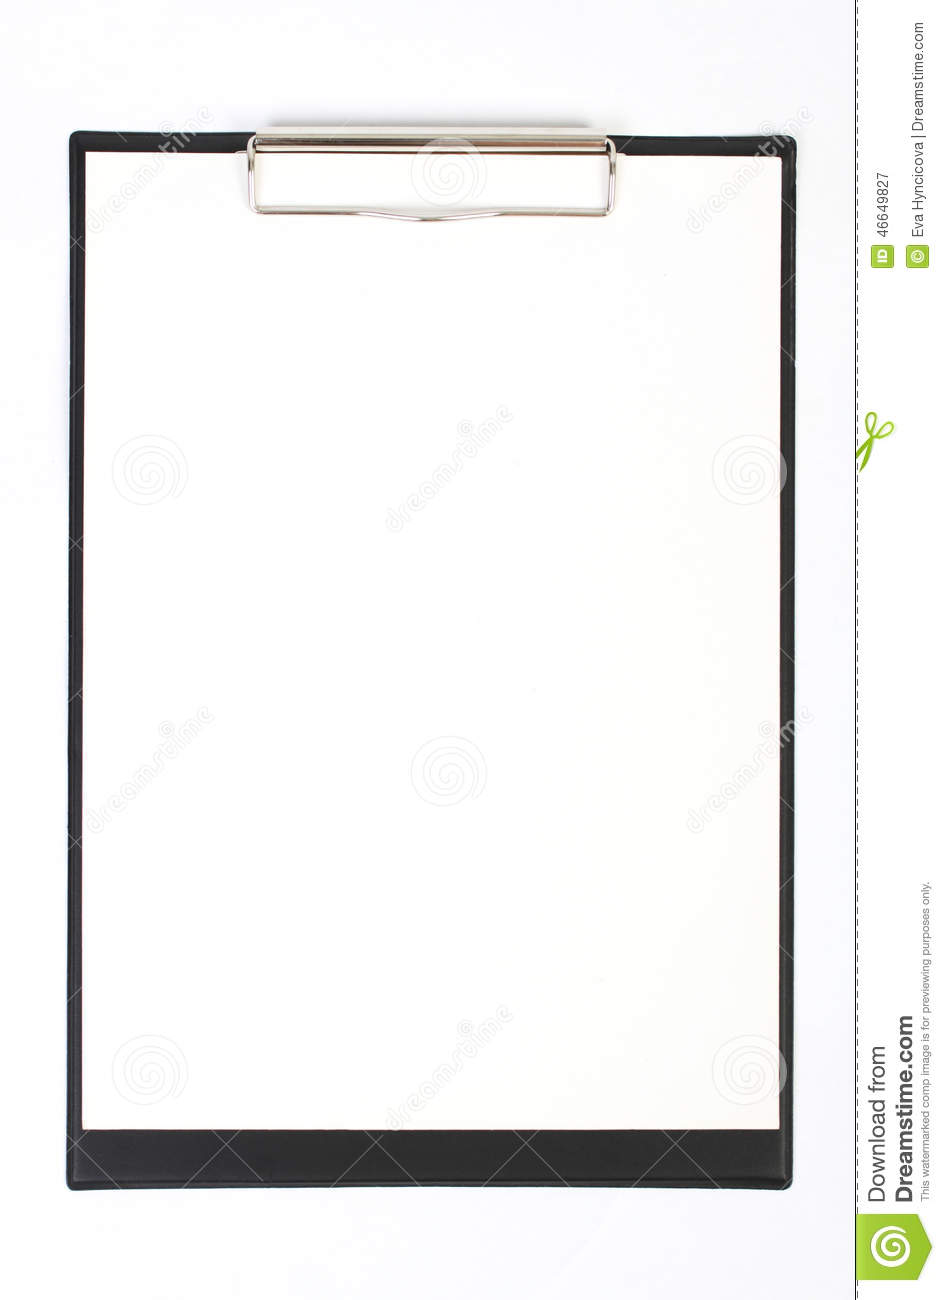 https://thumbs.dreamstime.com/z/black-clipboard-blank-sheets-paper-isolated-white-vertical-46649827.jpg